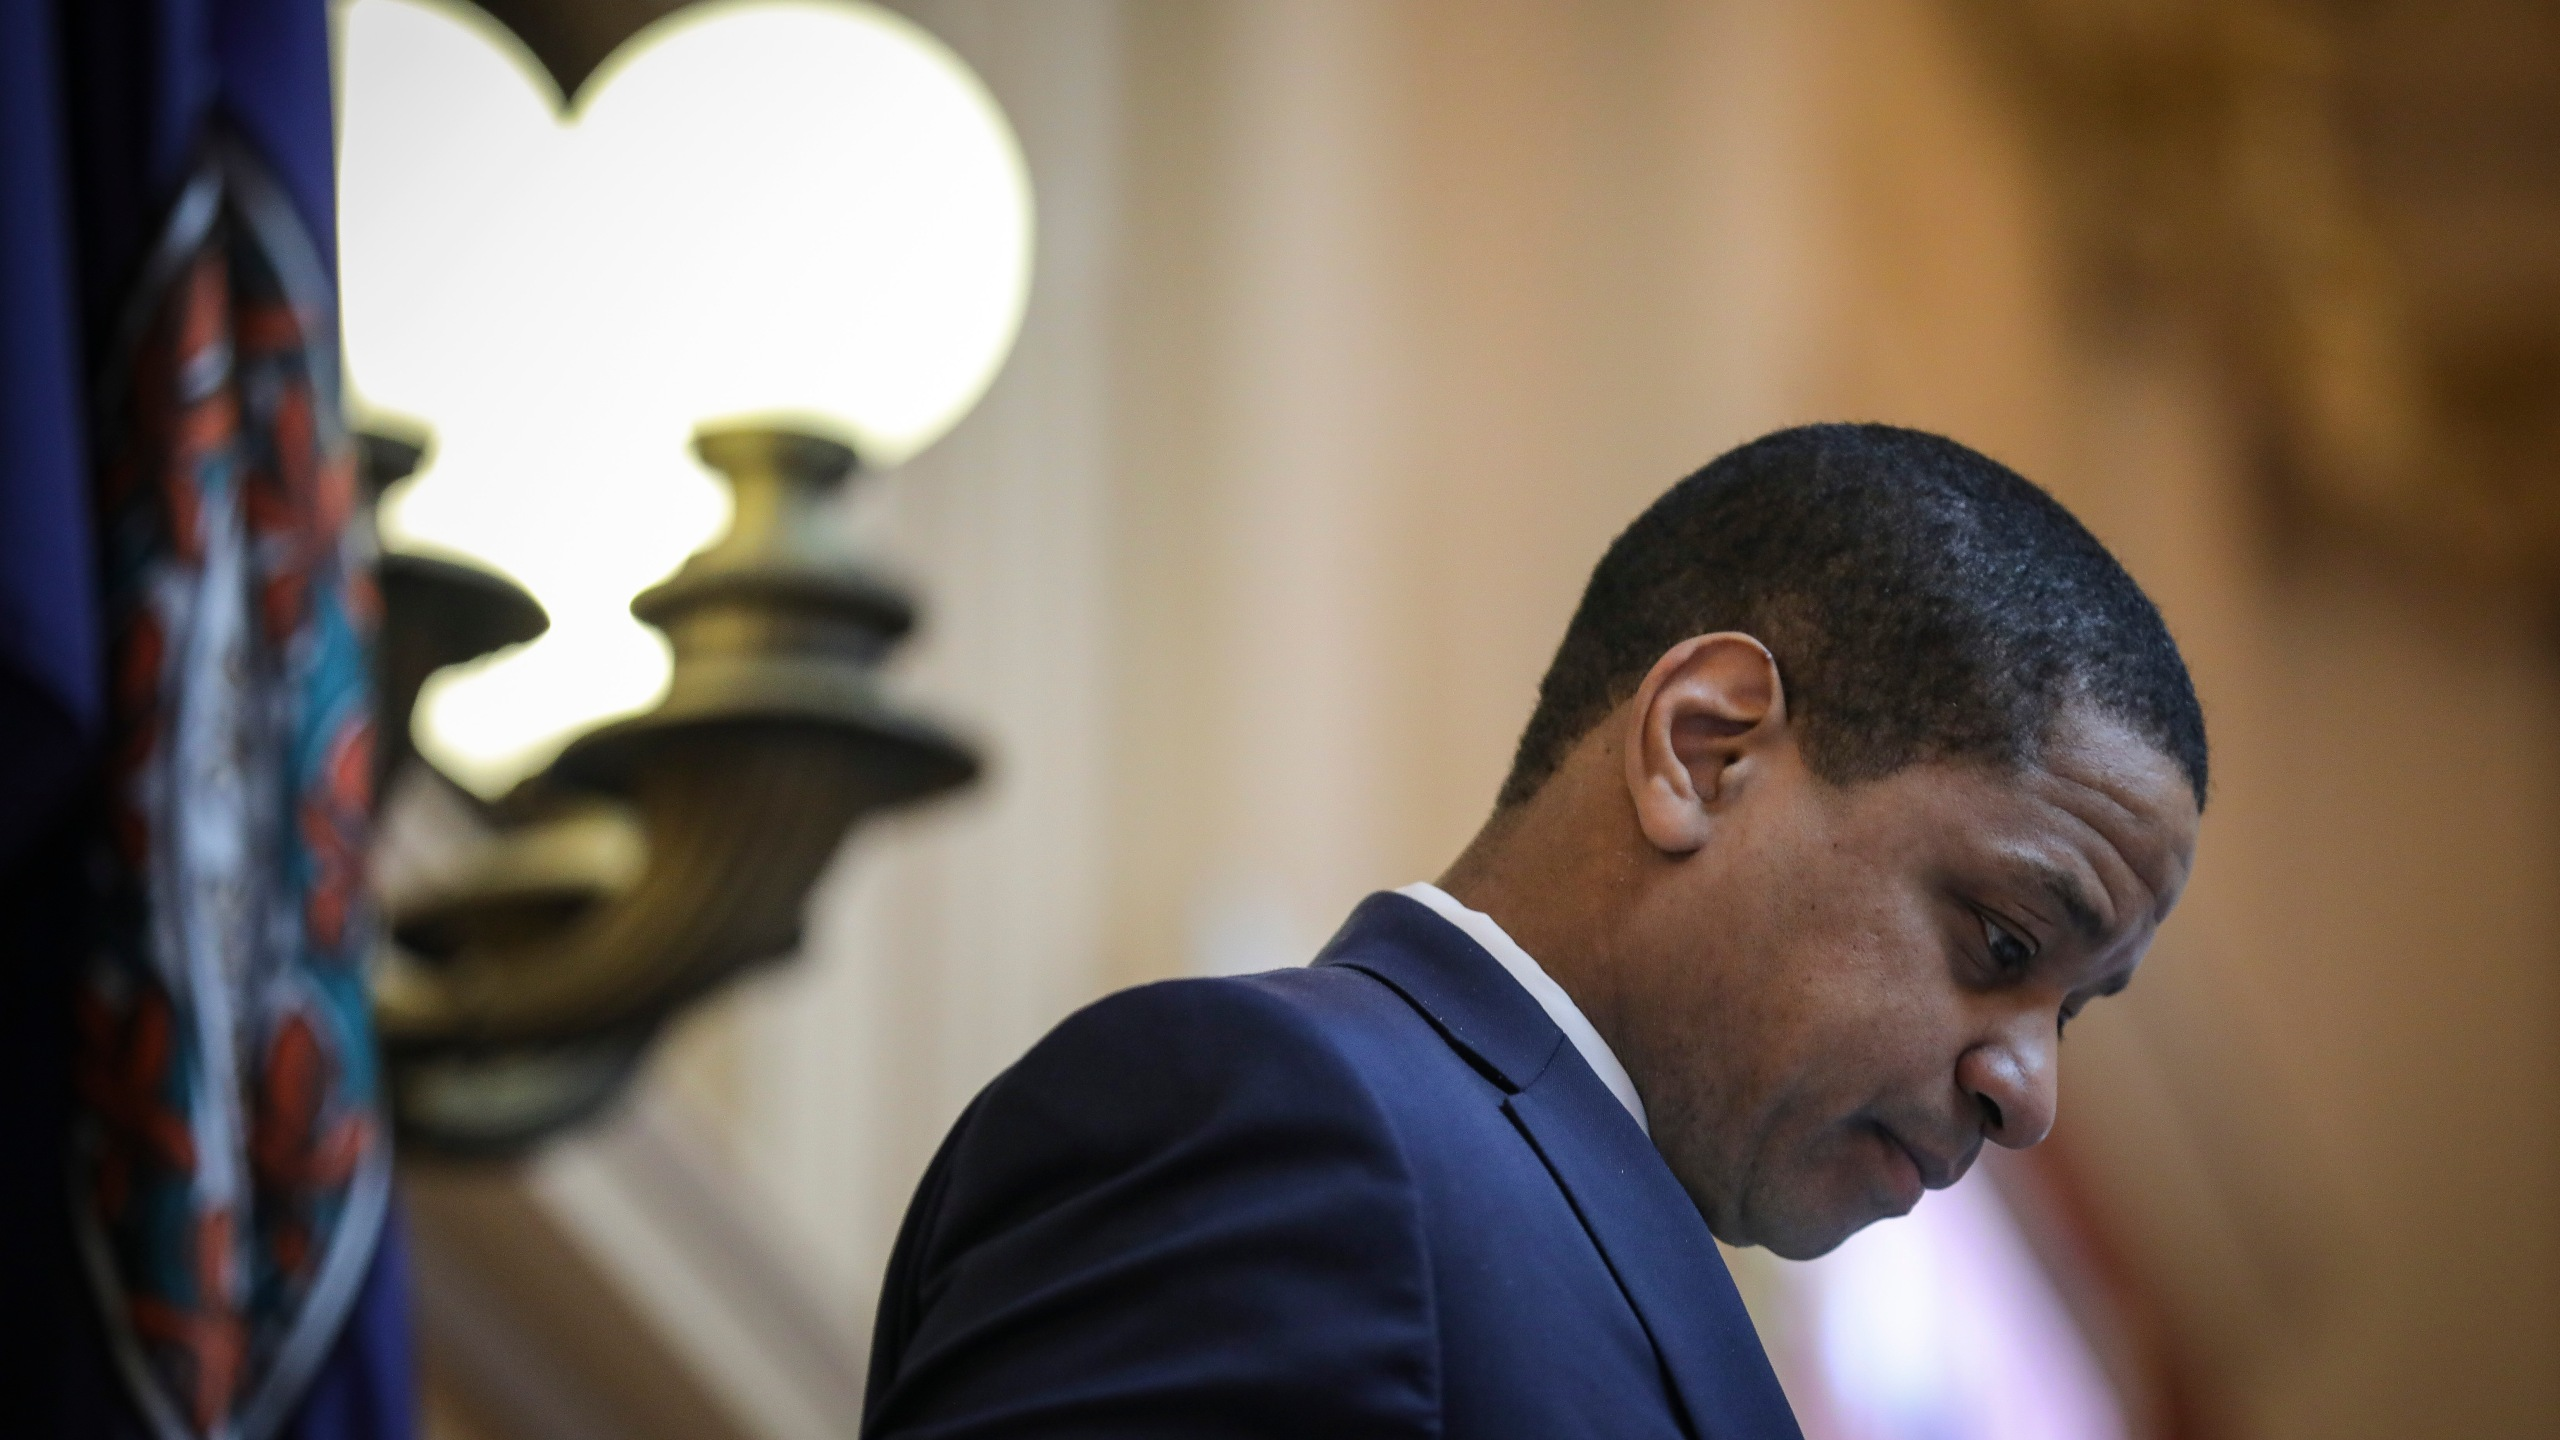 Virginia Lt. Gov. Justin Fairfax presides over the Senate at the Virginia State Capitol on Feb. 7, 2019 in Richmond, Virginia. (Credit: Drew Angerer/Getty Images)